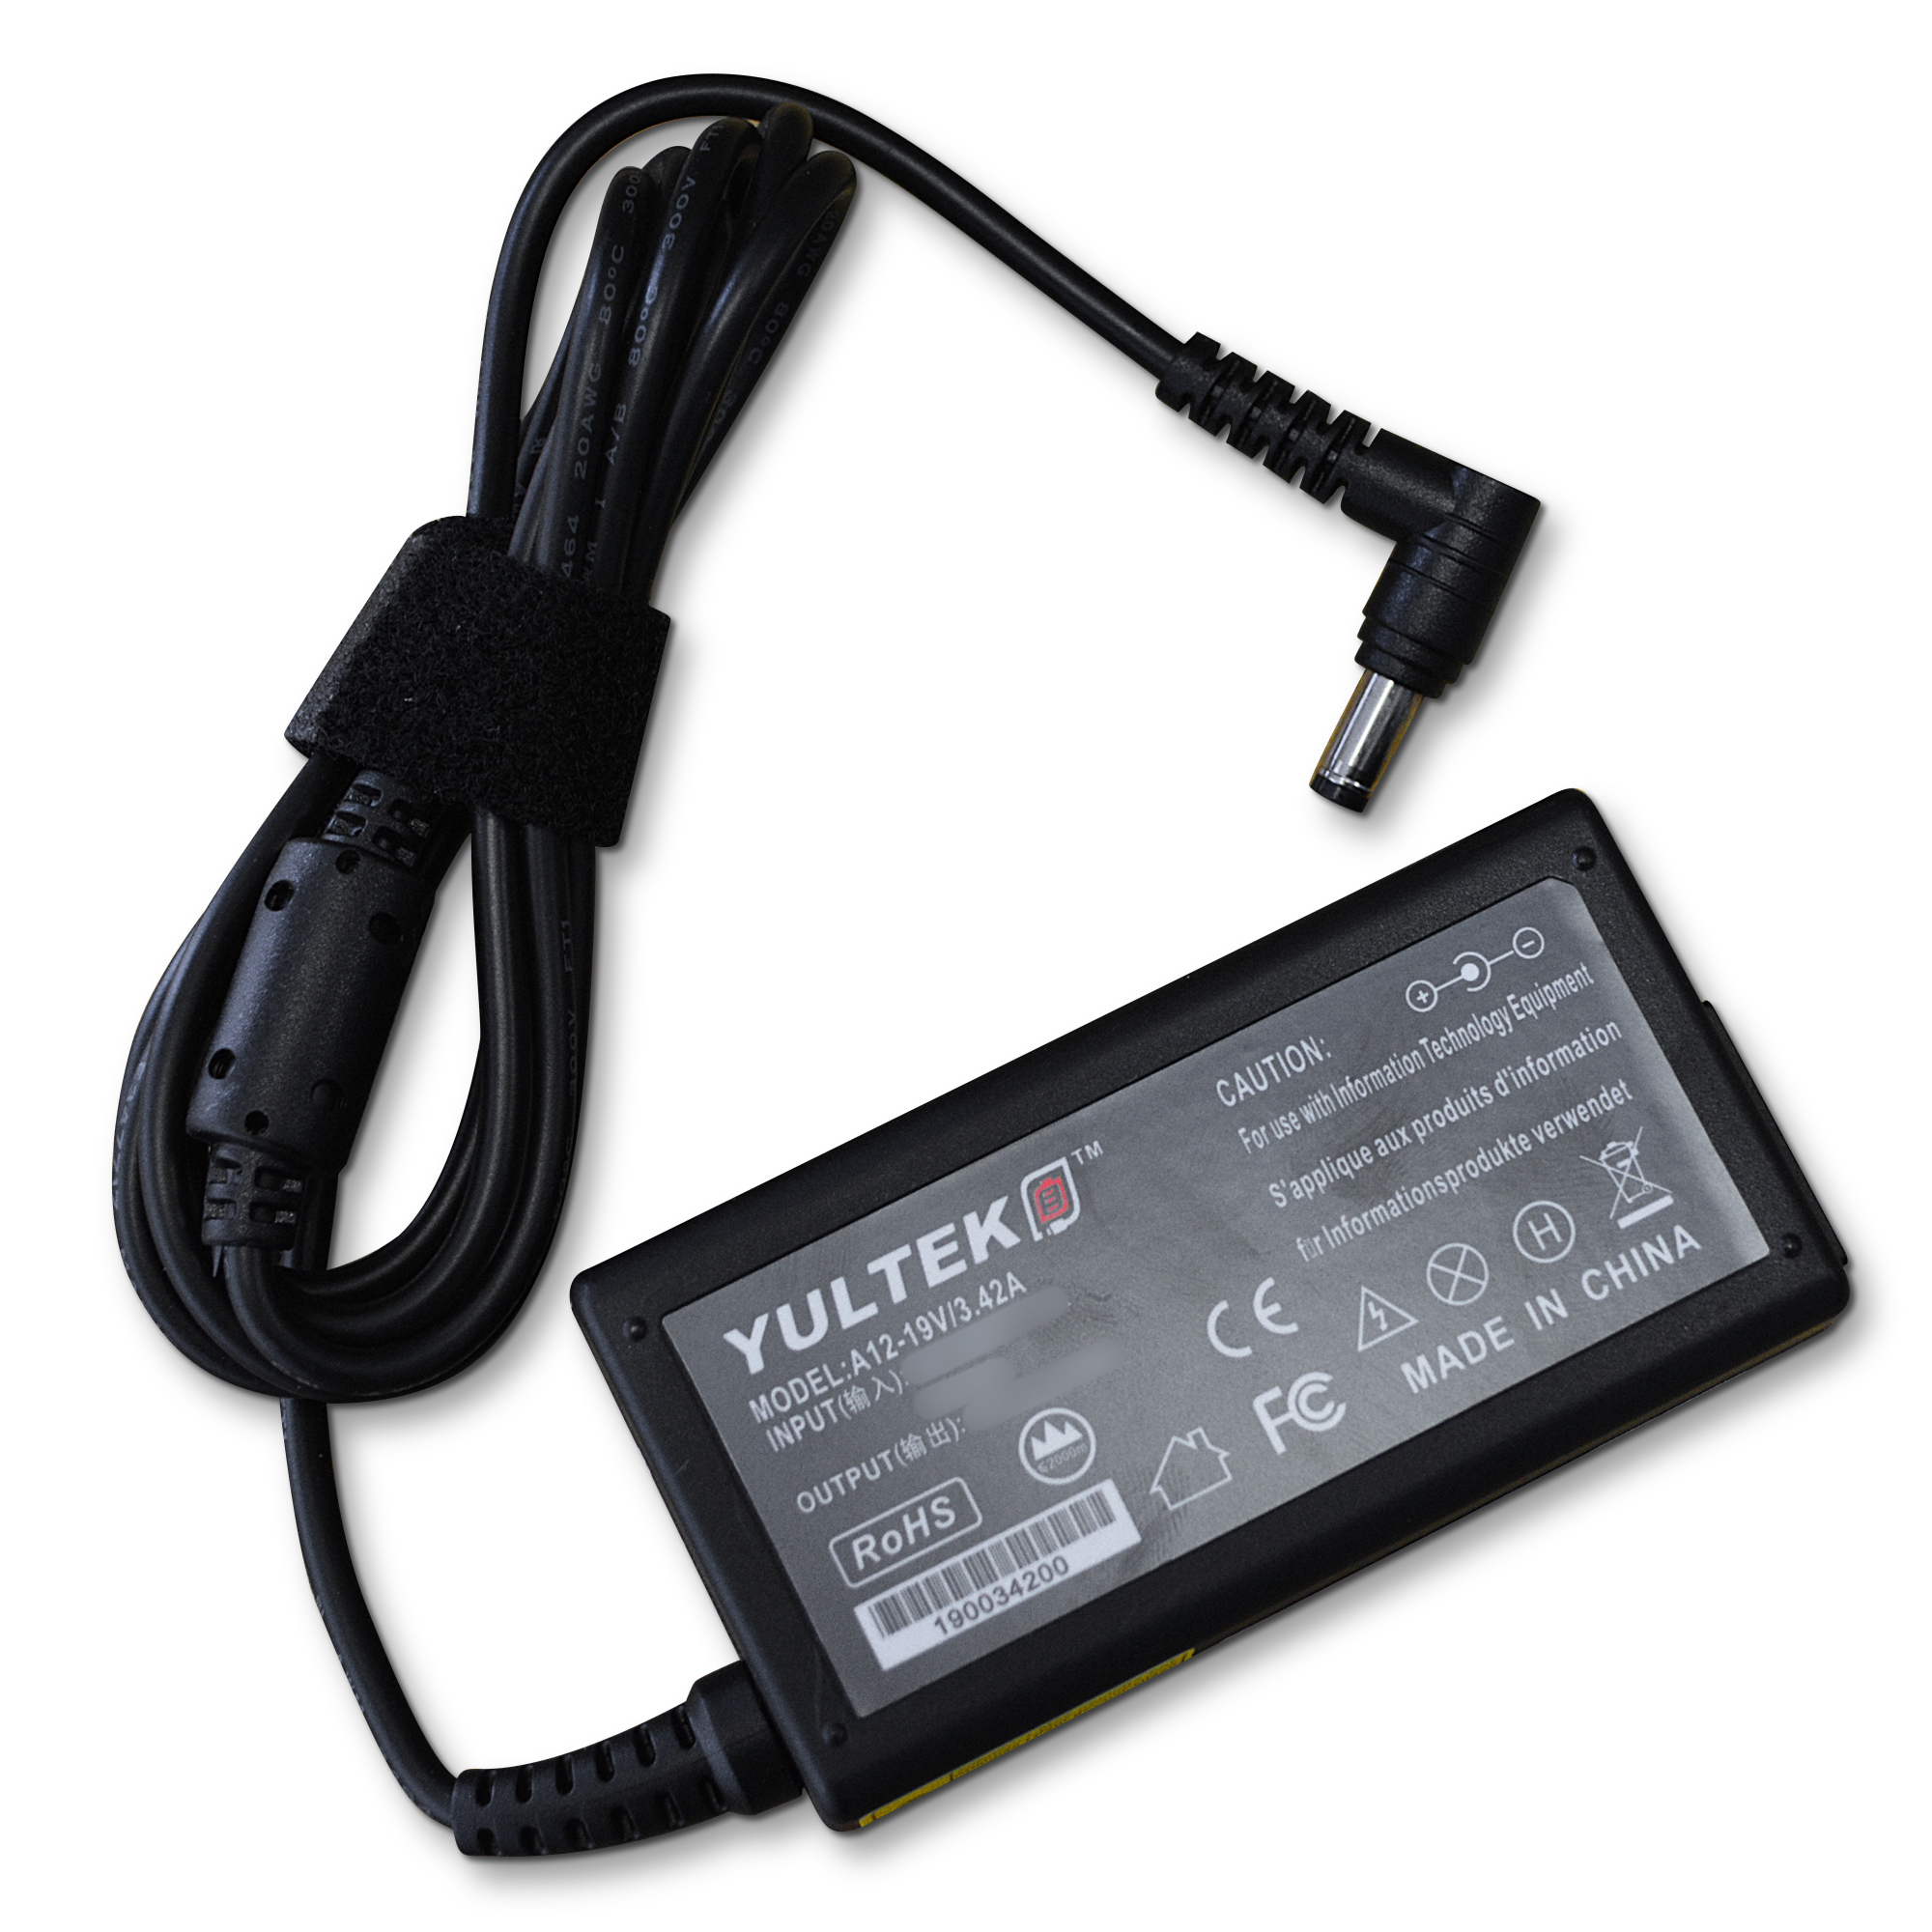 Fujitsu-Siemens Part Number UWL:76G01B65F-5A Laptop Charger